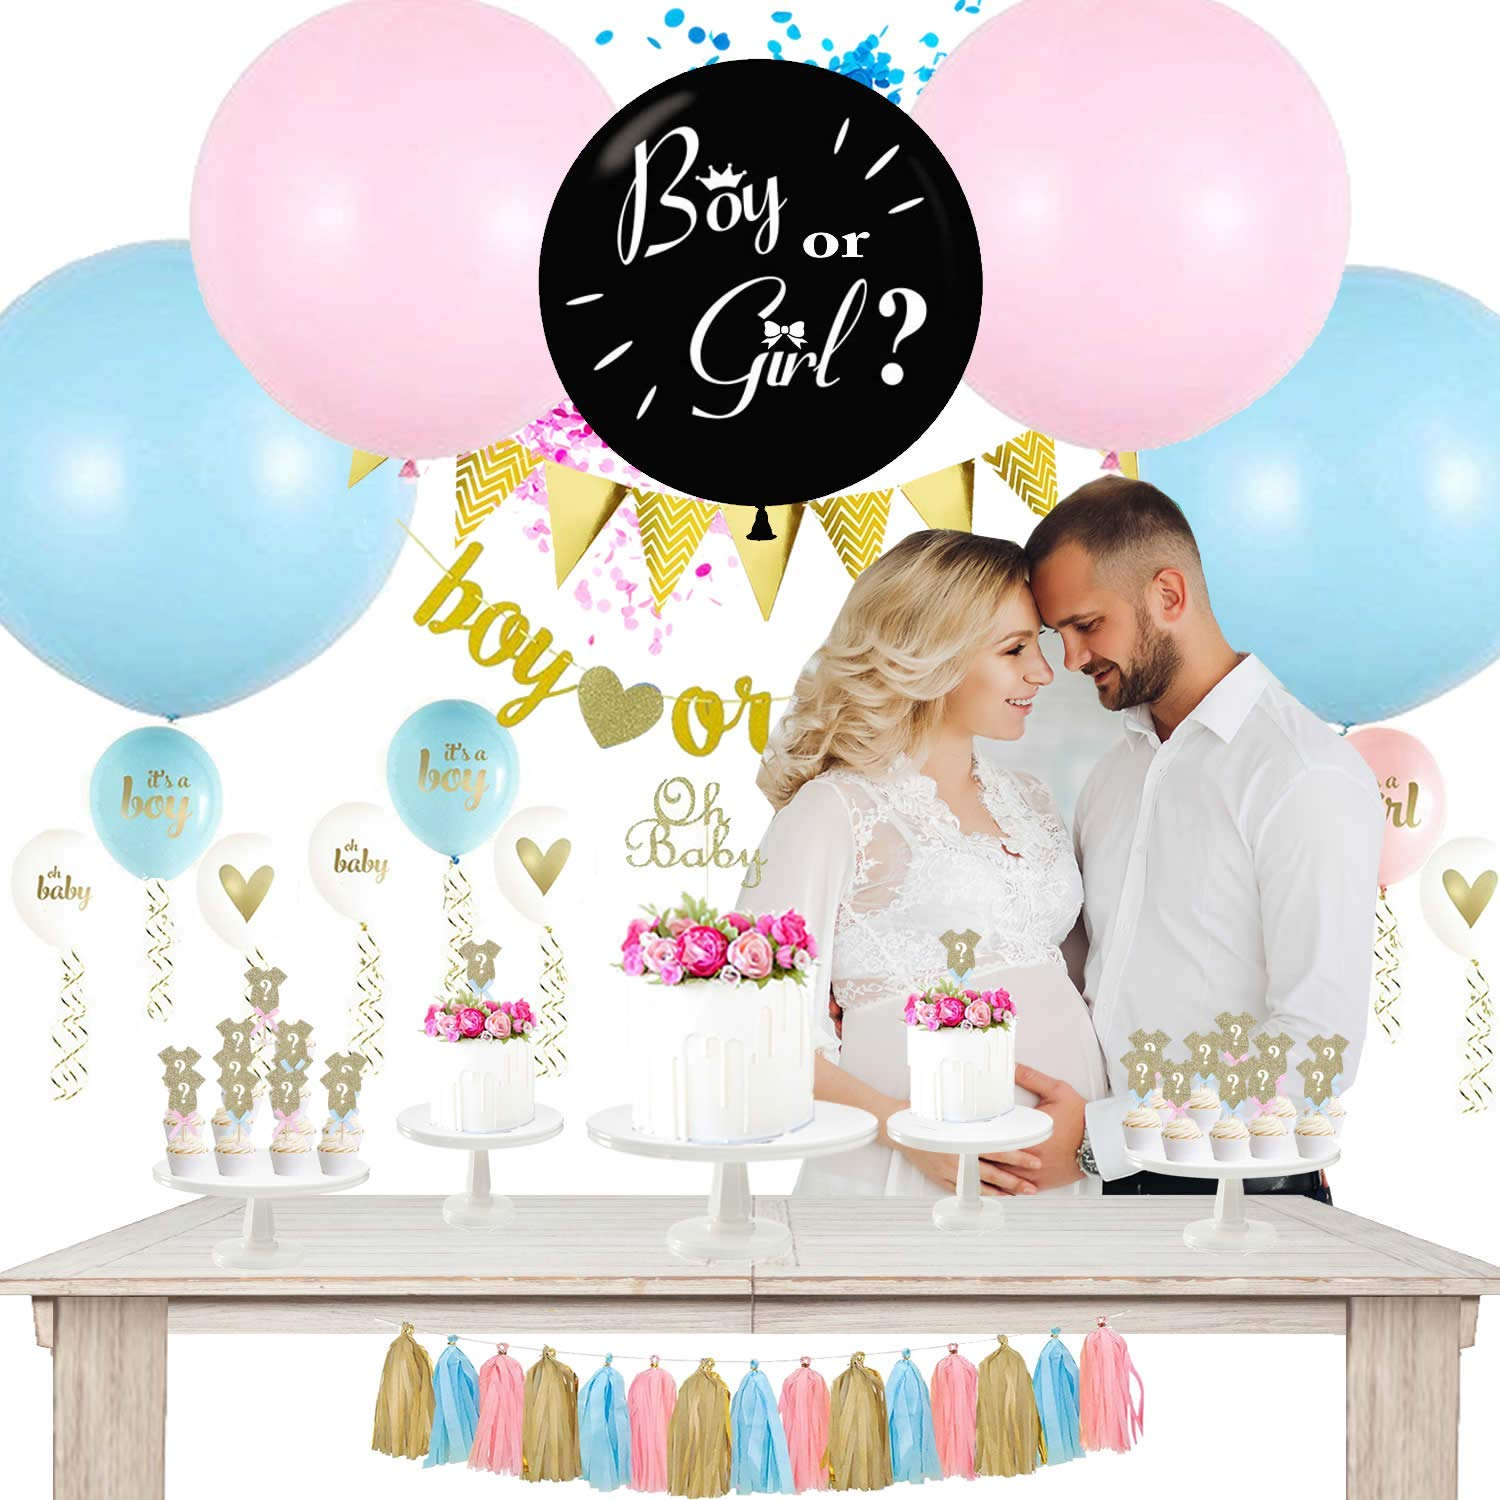 Gender Reveal Party Supplies Gender Reveal Decorations KIT creatique Baby Shower Decorations Set Baby Reveal Party Supplies Gender Reveal Balloon Baby Gender Reveal Party Supplies Gender Reveal Ideas